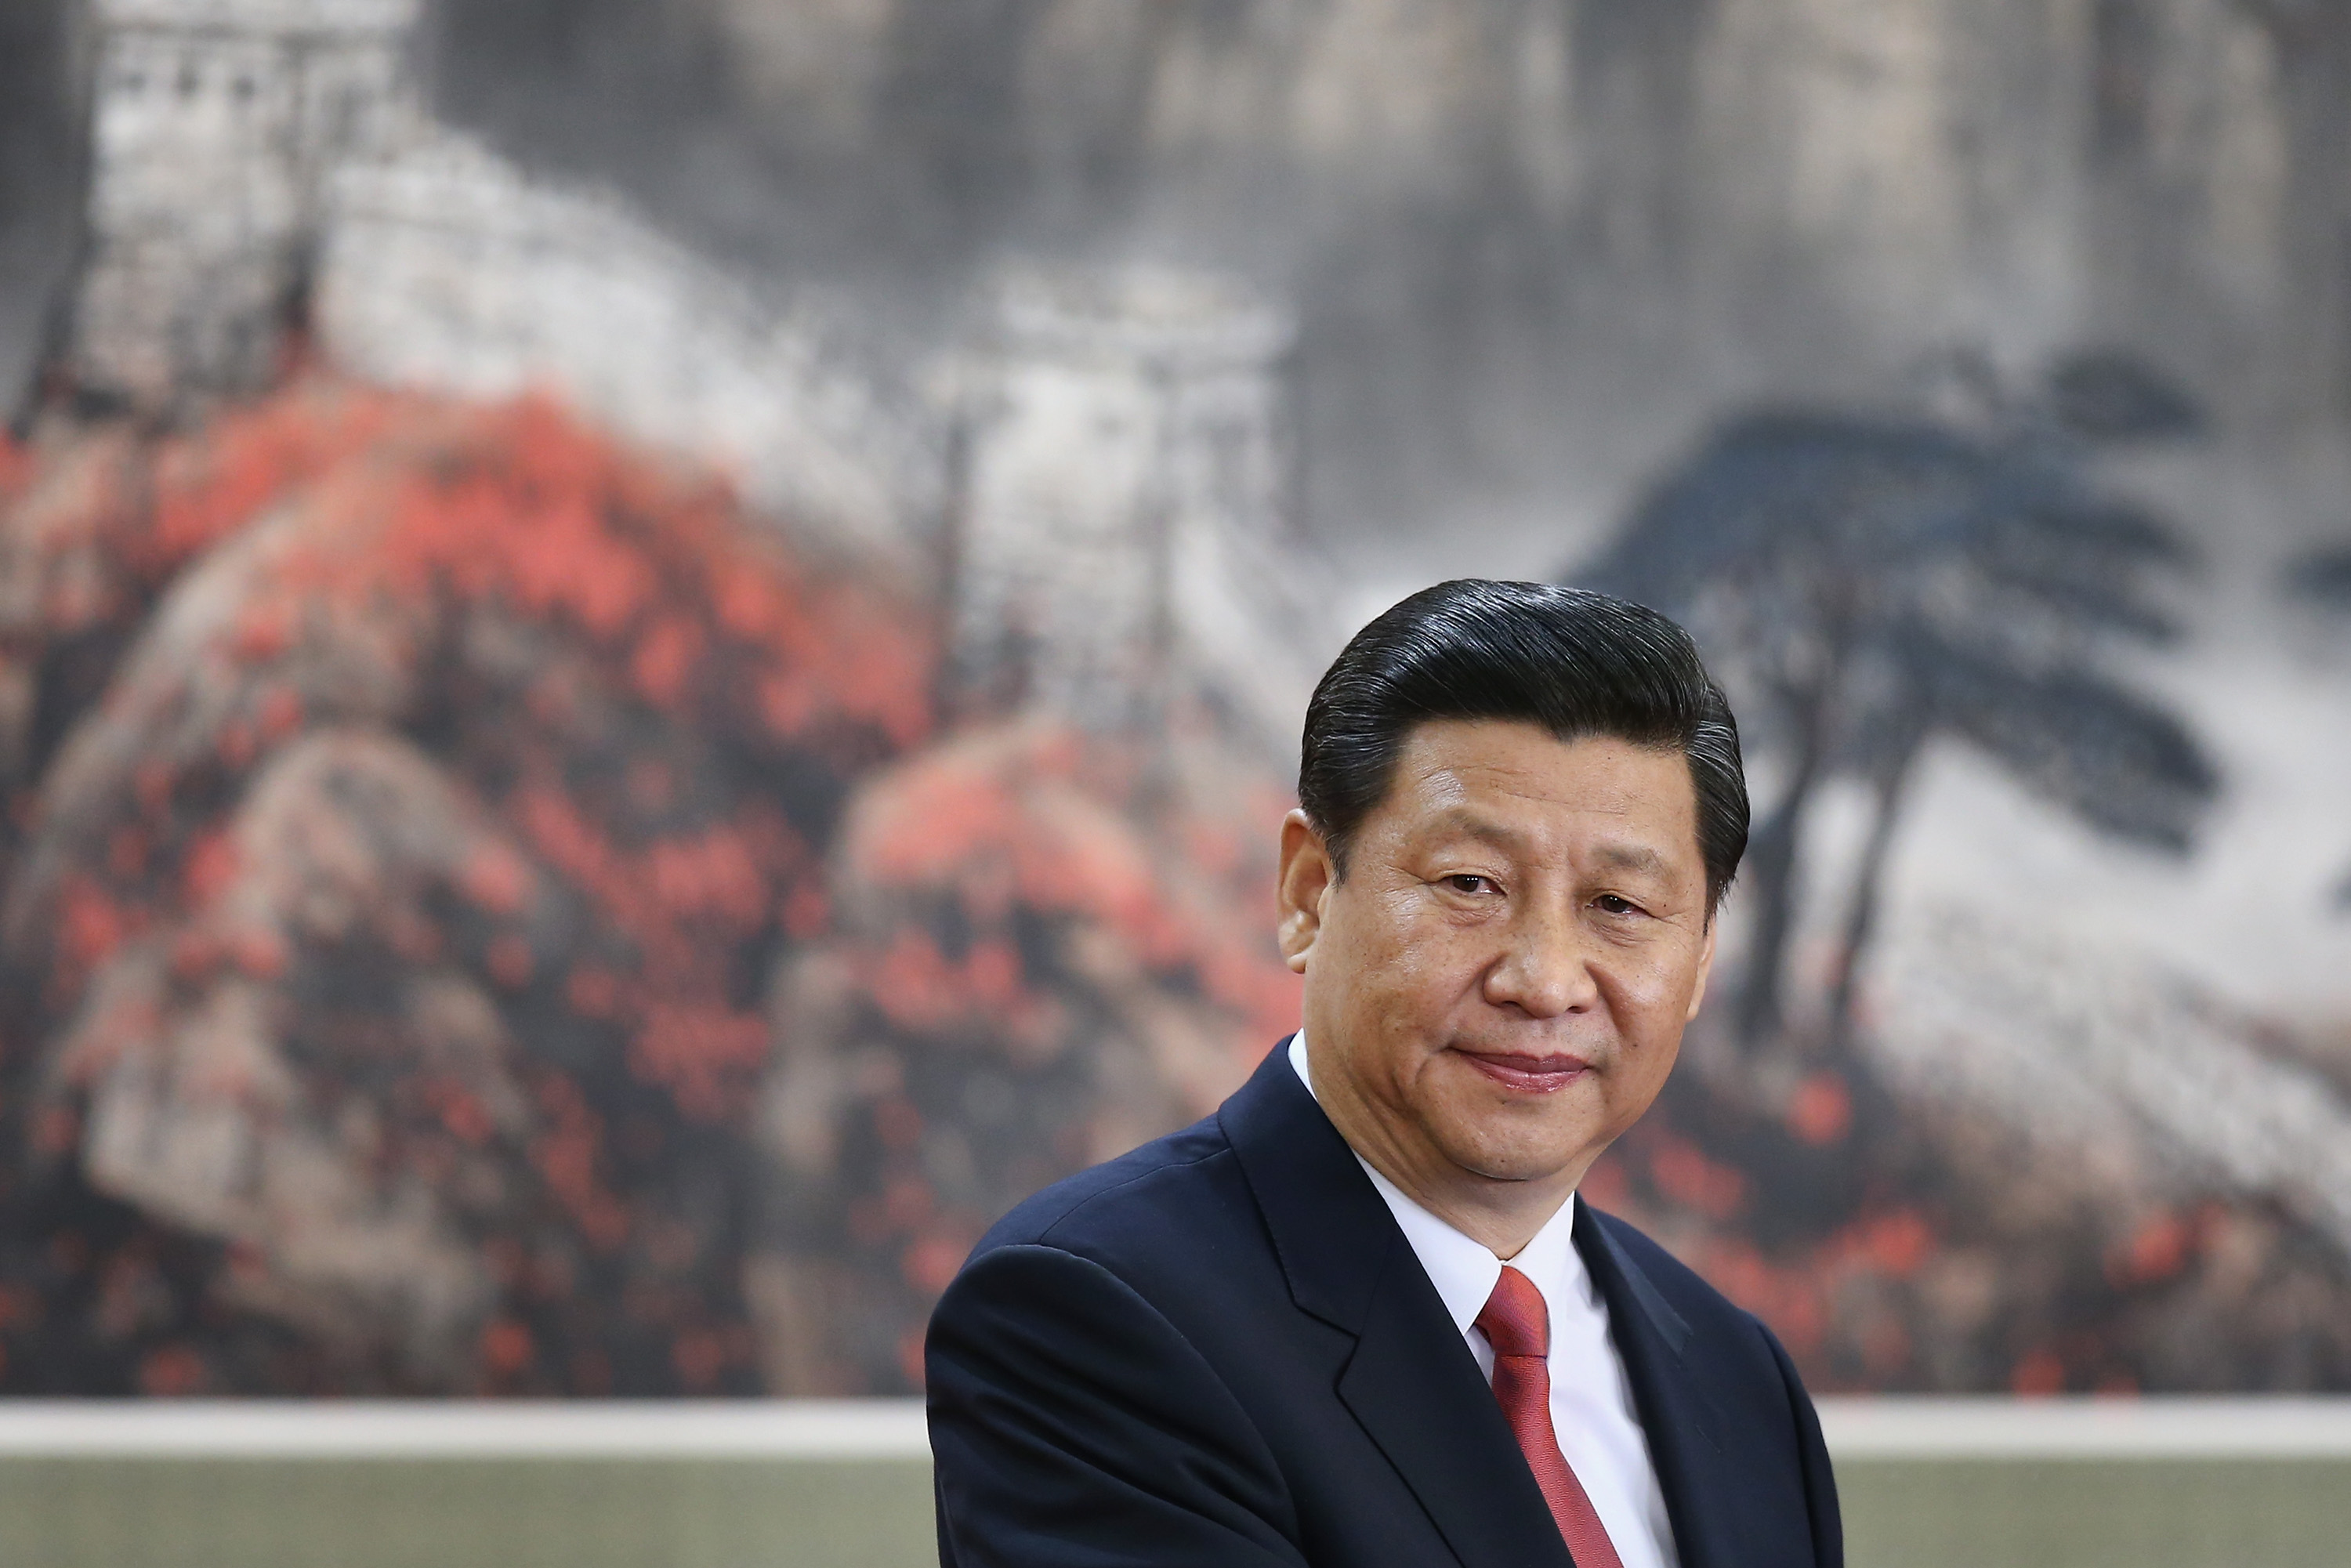 To Be, or Not to Be: A Question for Modern China